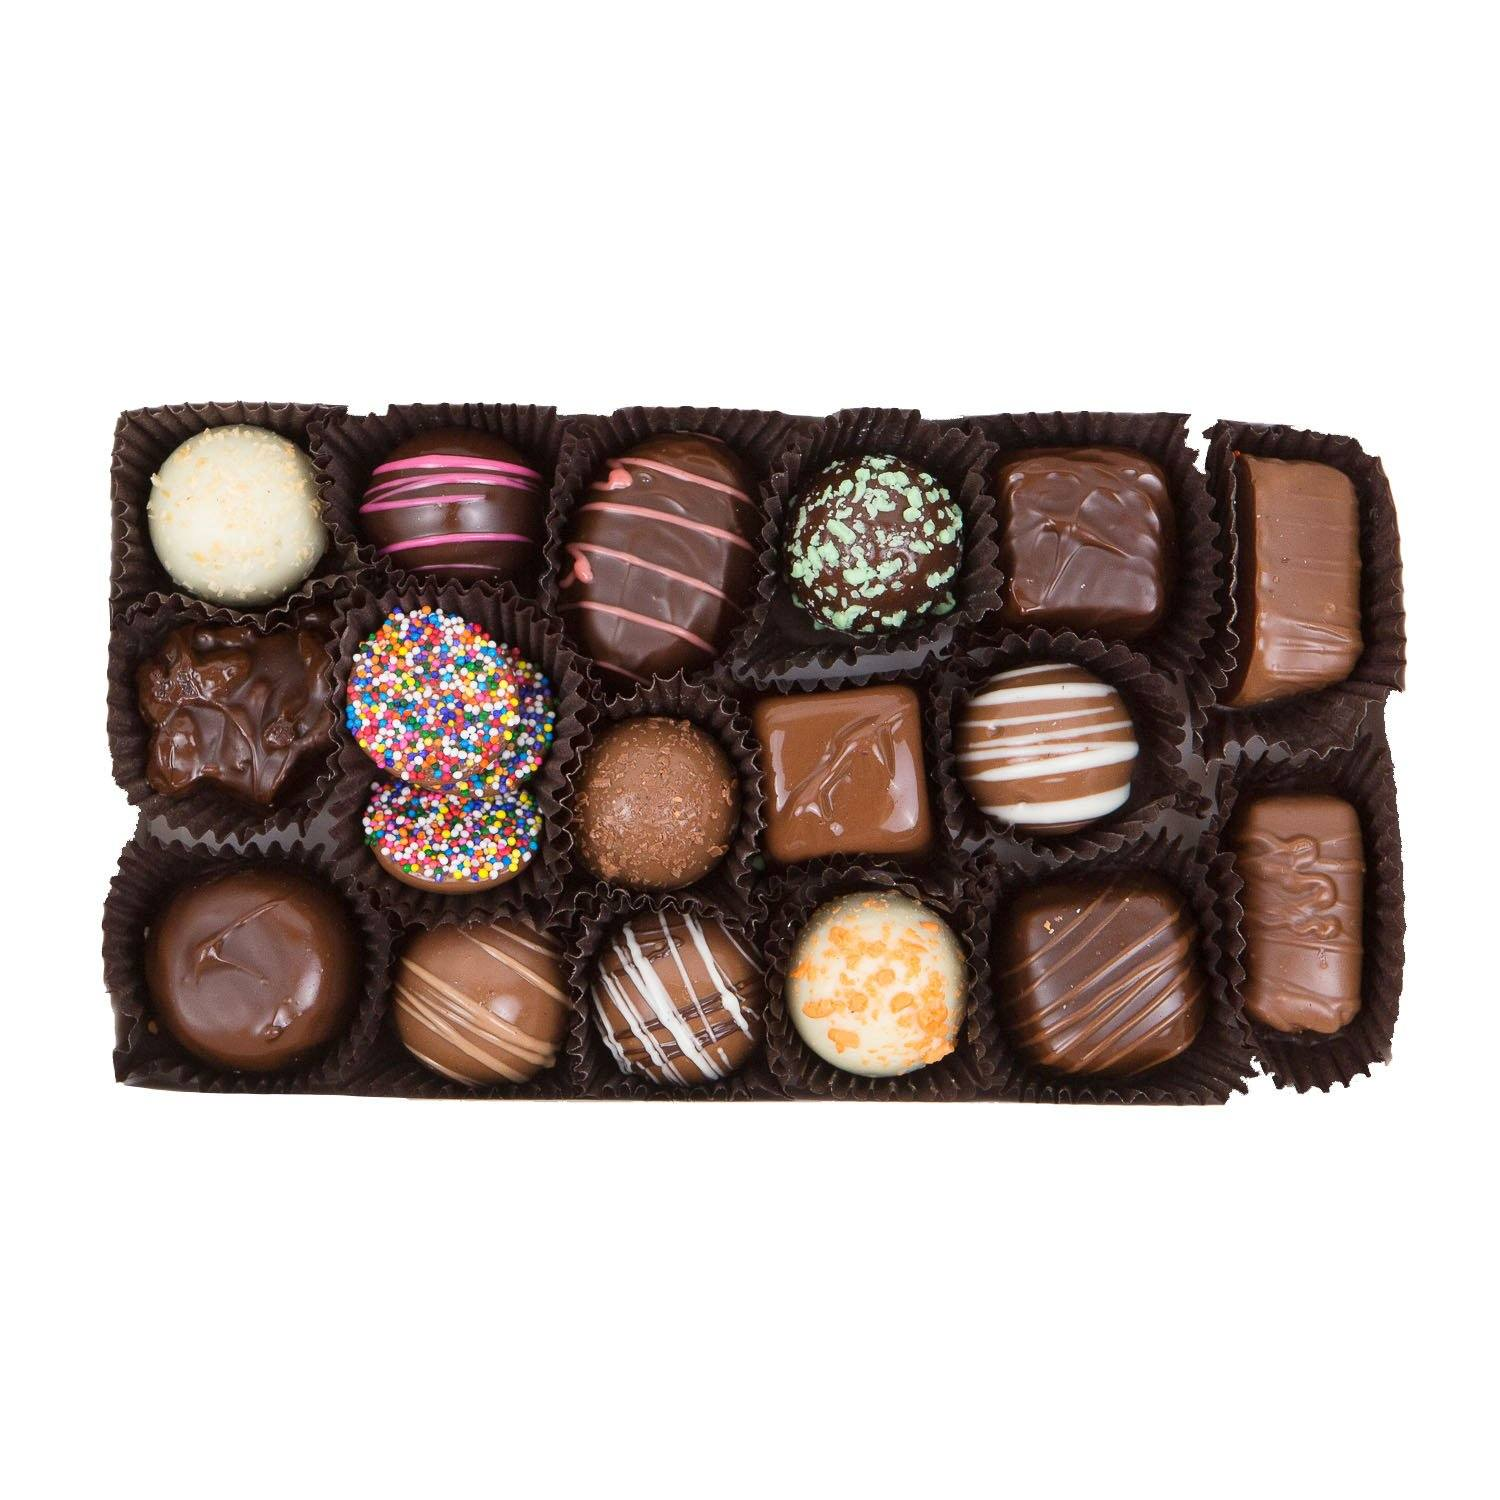 Gifts for Chocolate Lovers - Assorted Chocolate Gift Box - Jackie's Chocolate (1487136981027)